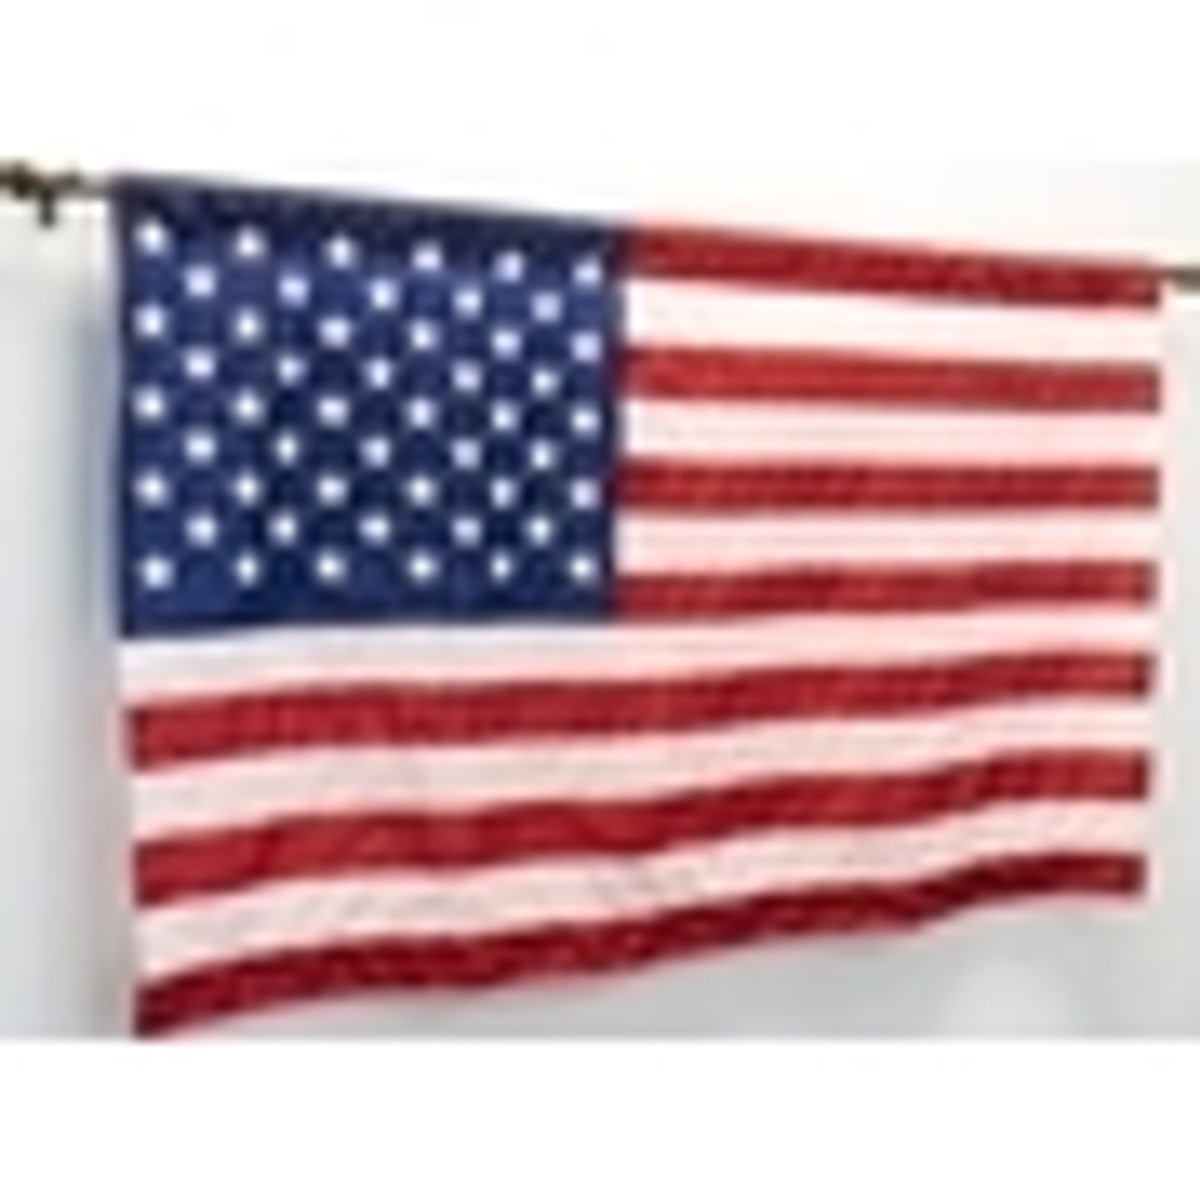 Auditorium Wall Mounted US Flags